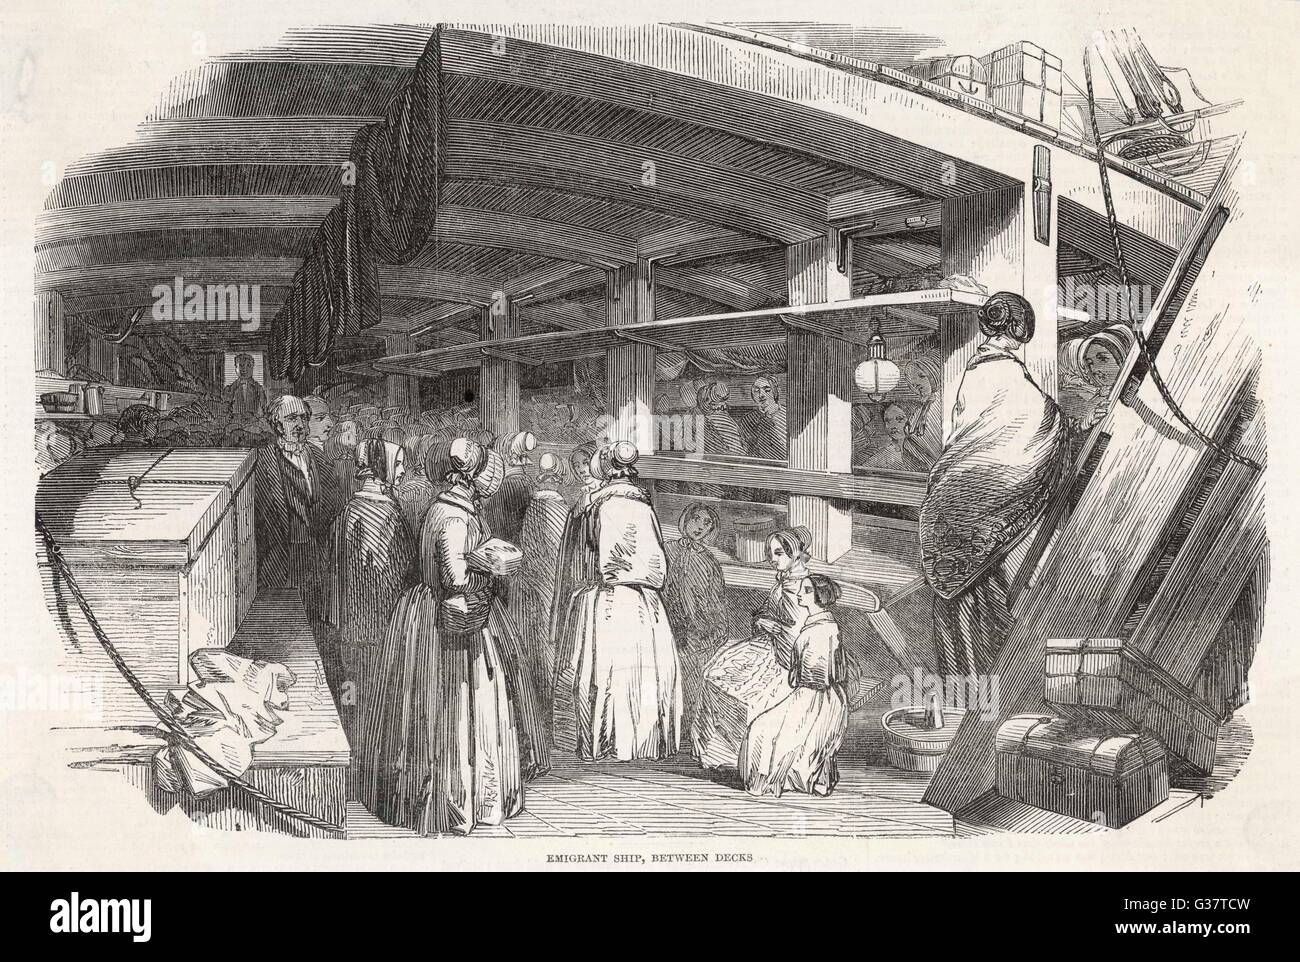 Image result for DECK PASSENGERS SHIP BEEDLE 1890